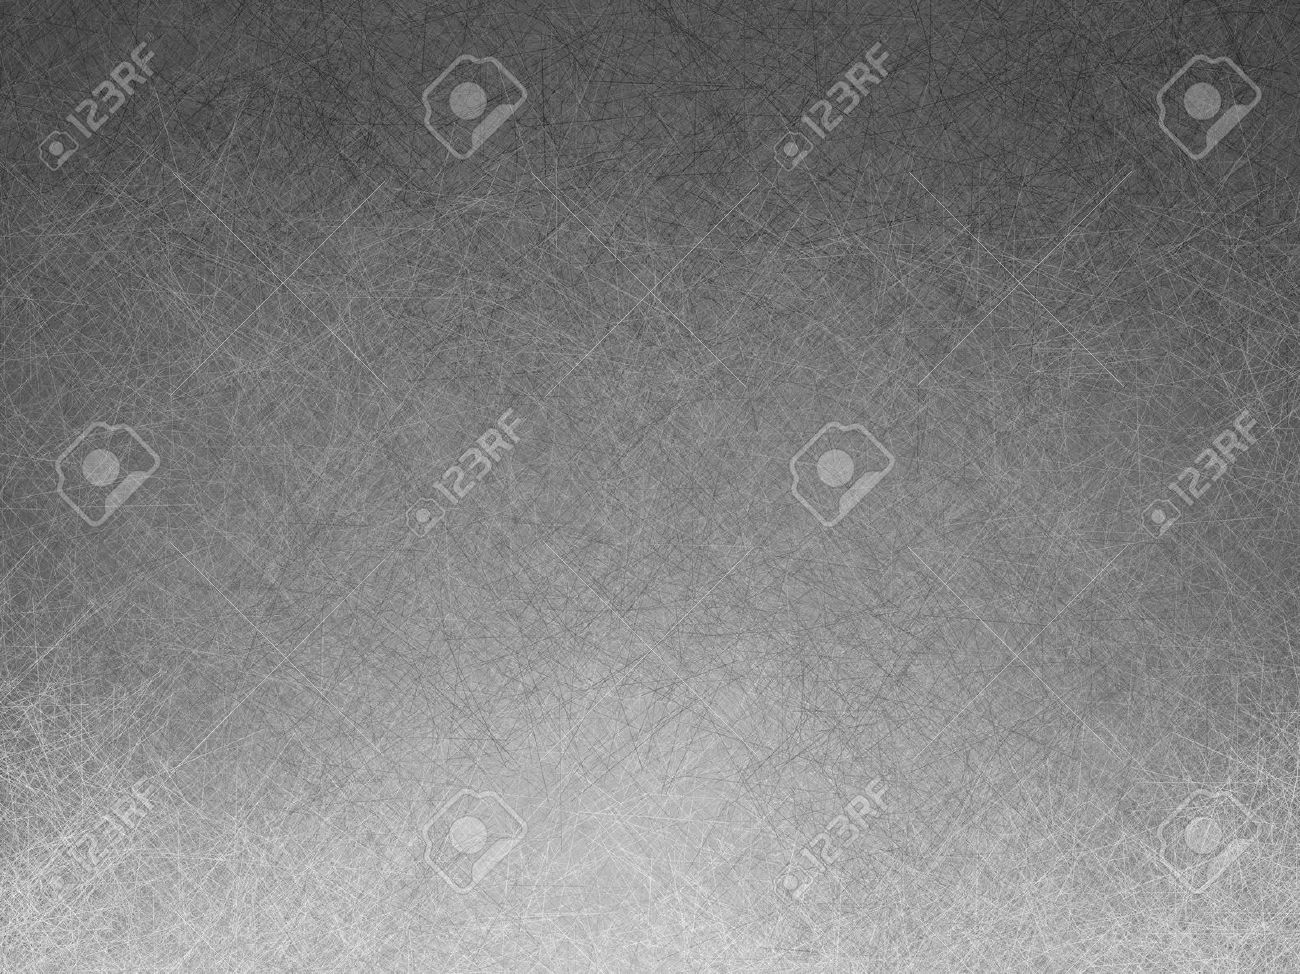 Abstract Black And White Gradient Background With Detailed Texture ...